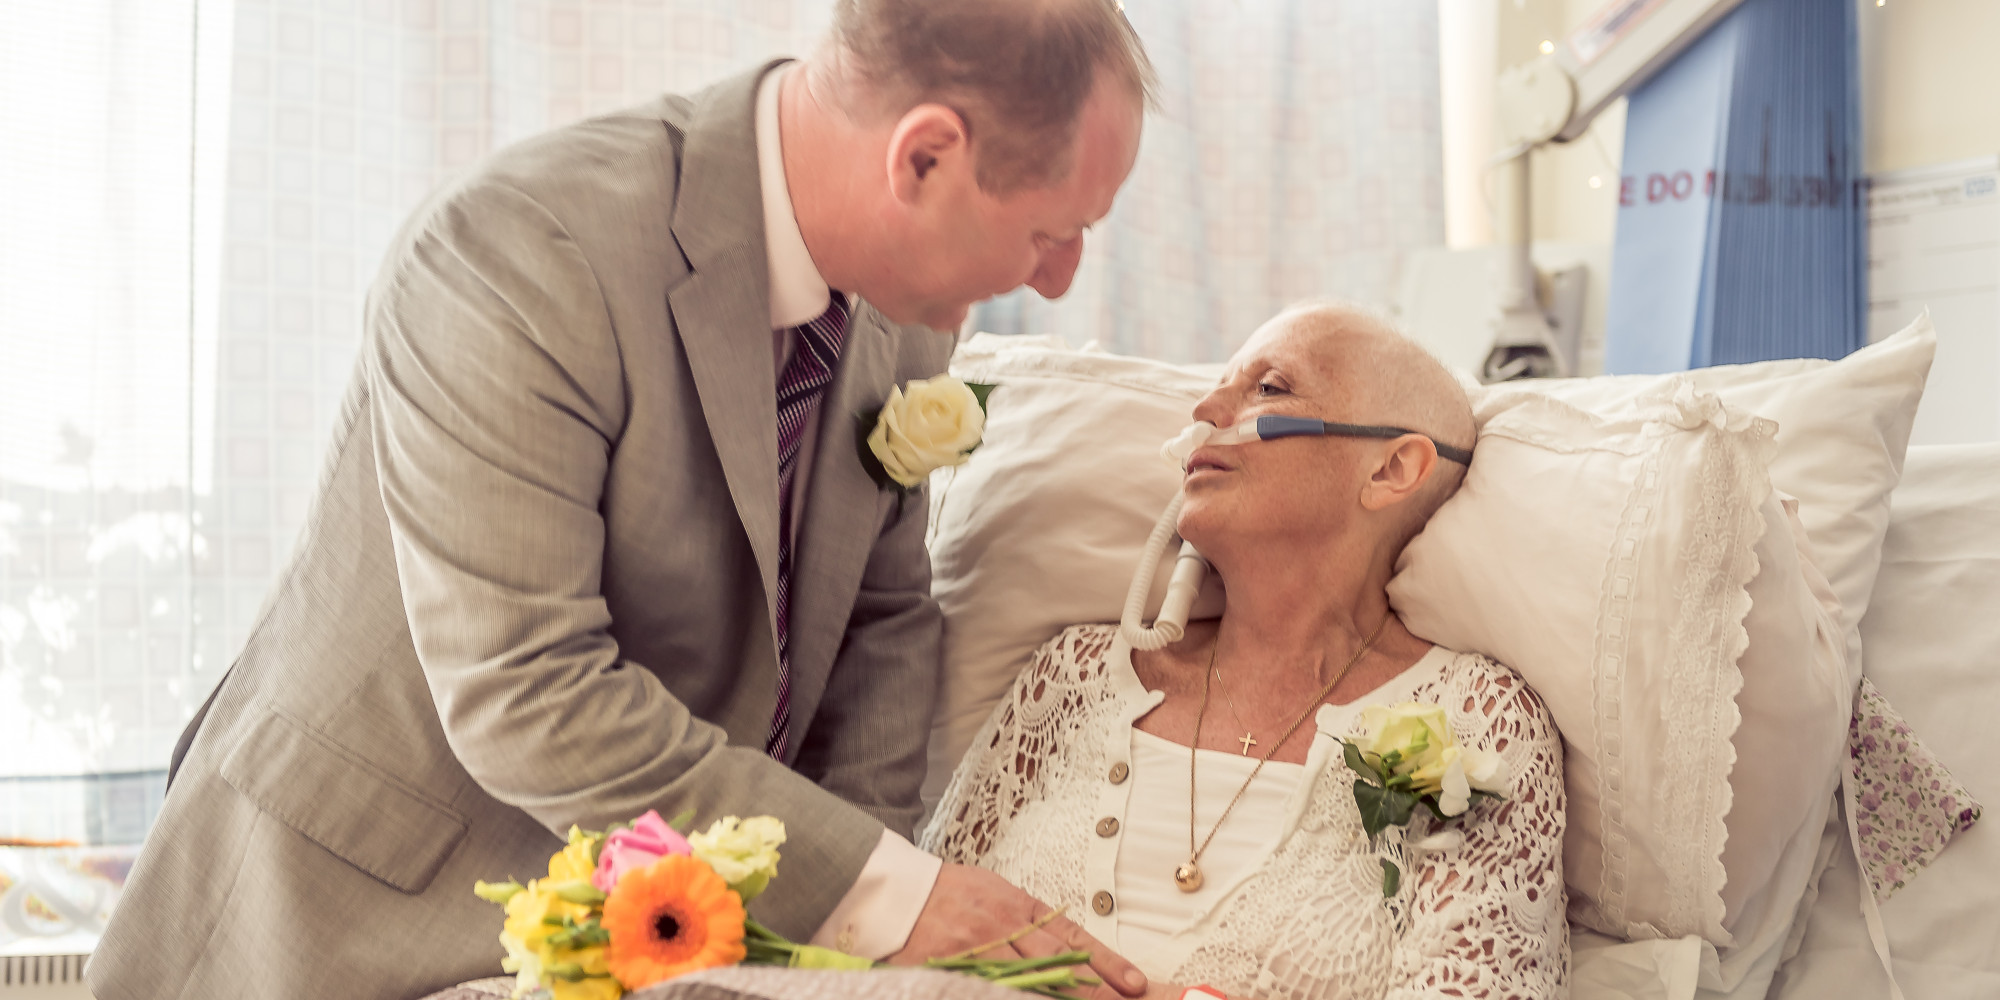 dating cancer patients You and your partner save as favorite sign in to receive recommendations  what do partners of breast cancer patients care most about in spite of.